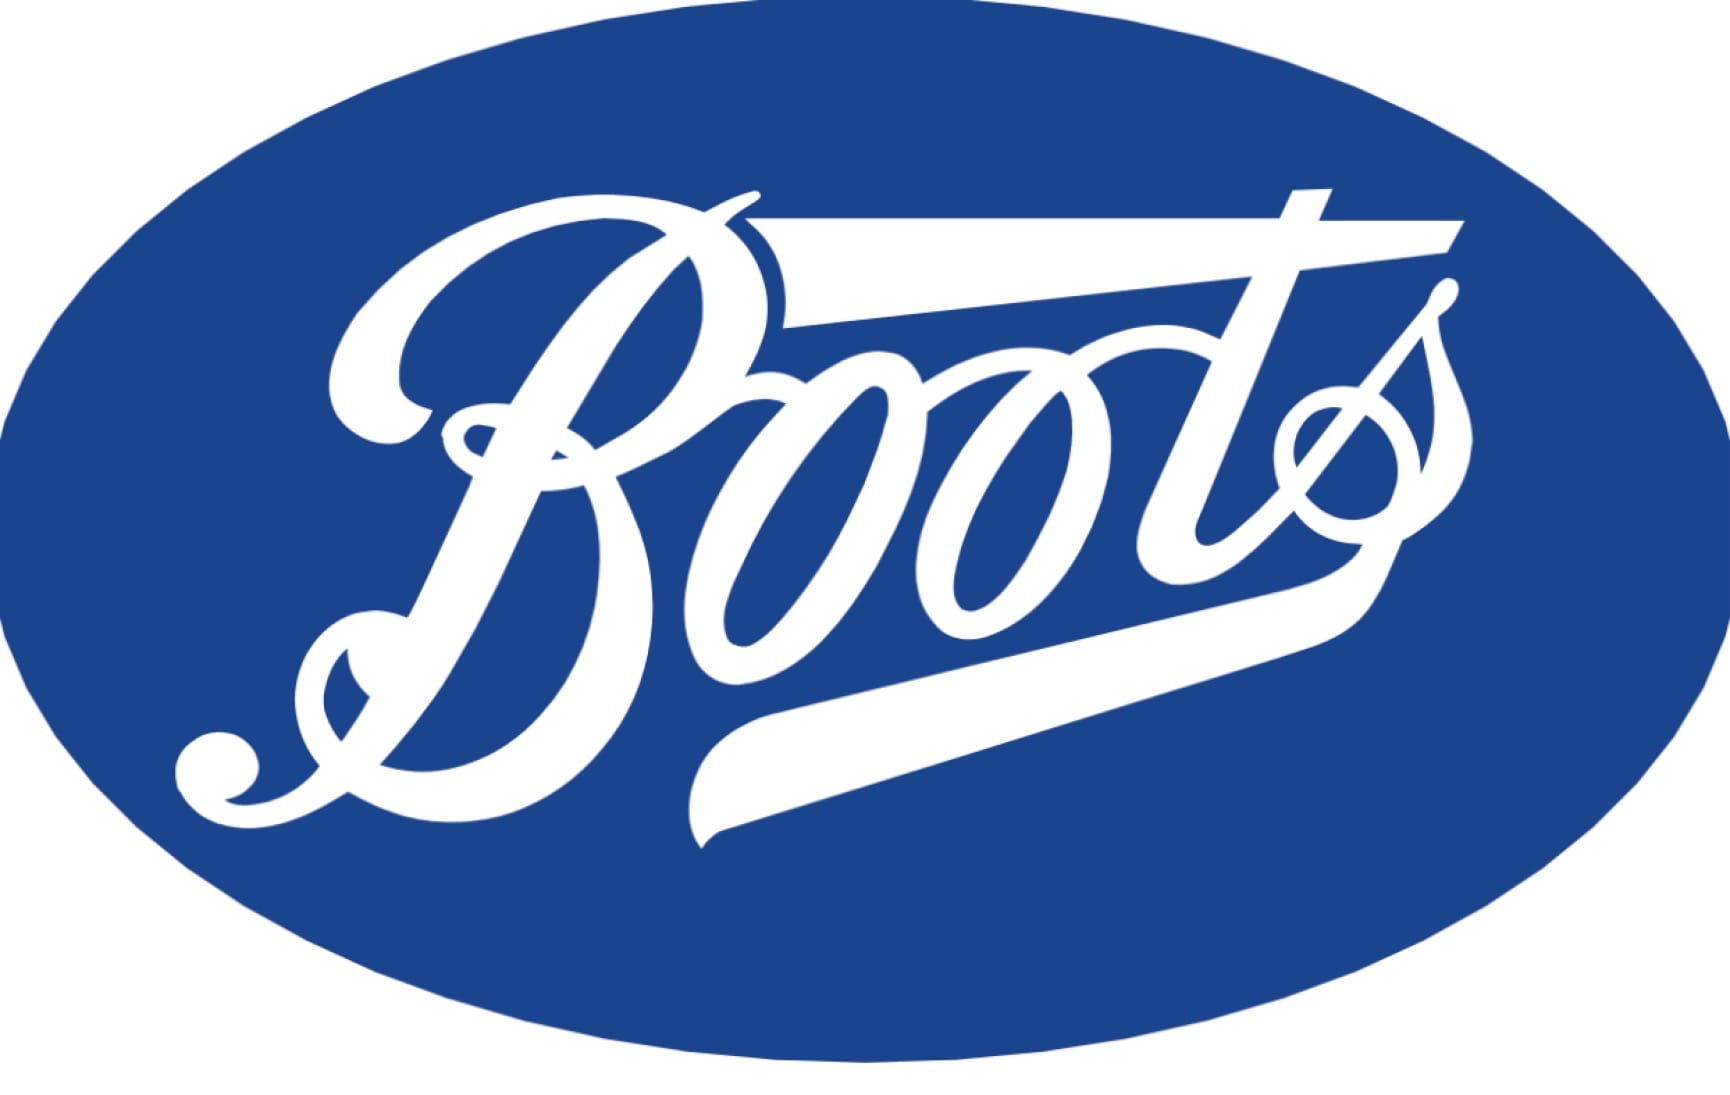 boots-website-down-not-working